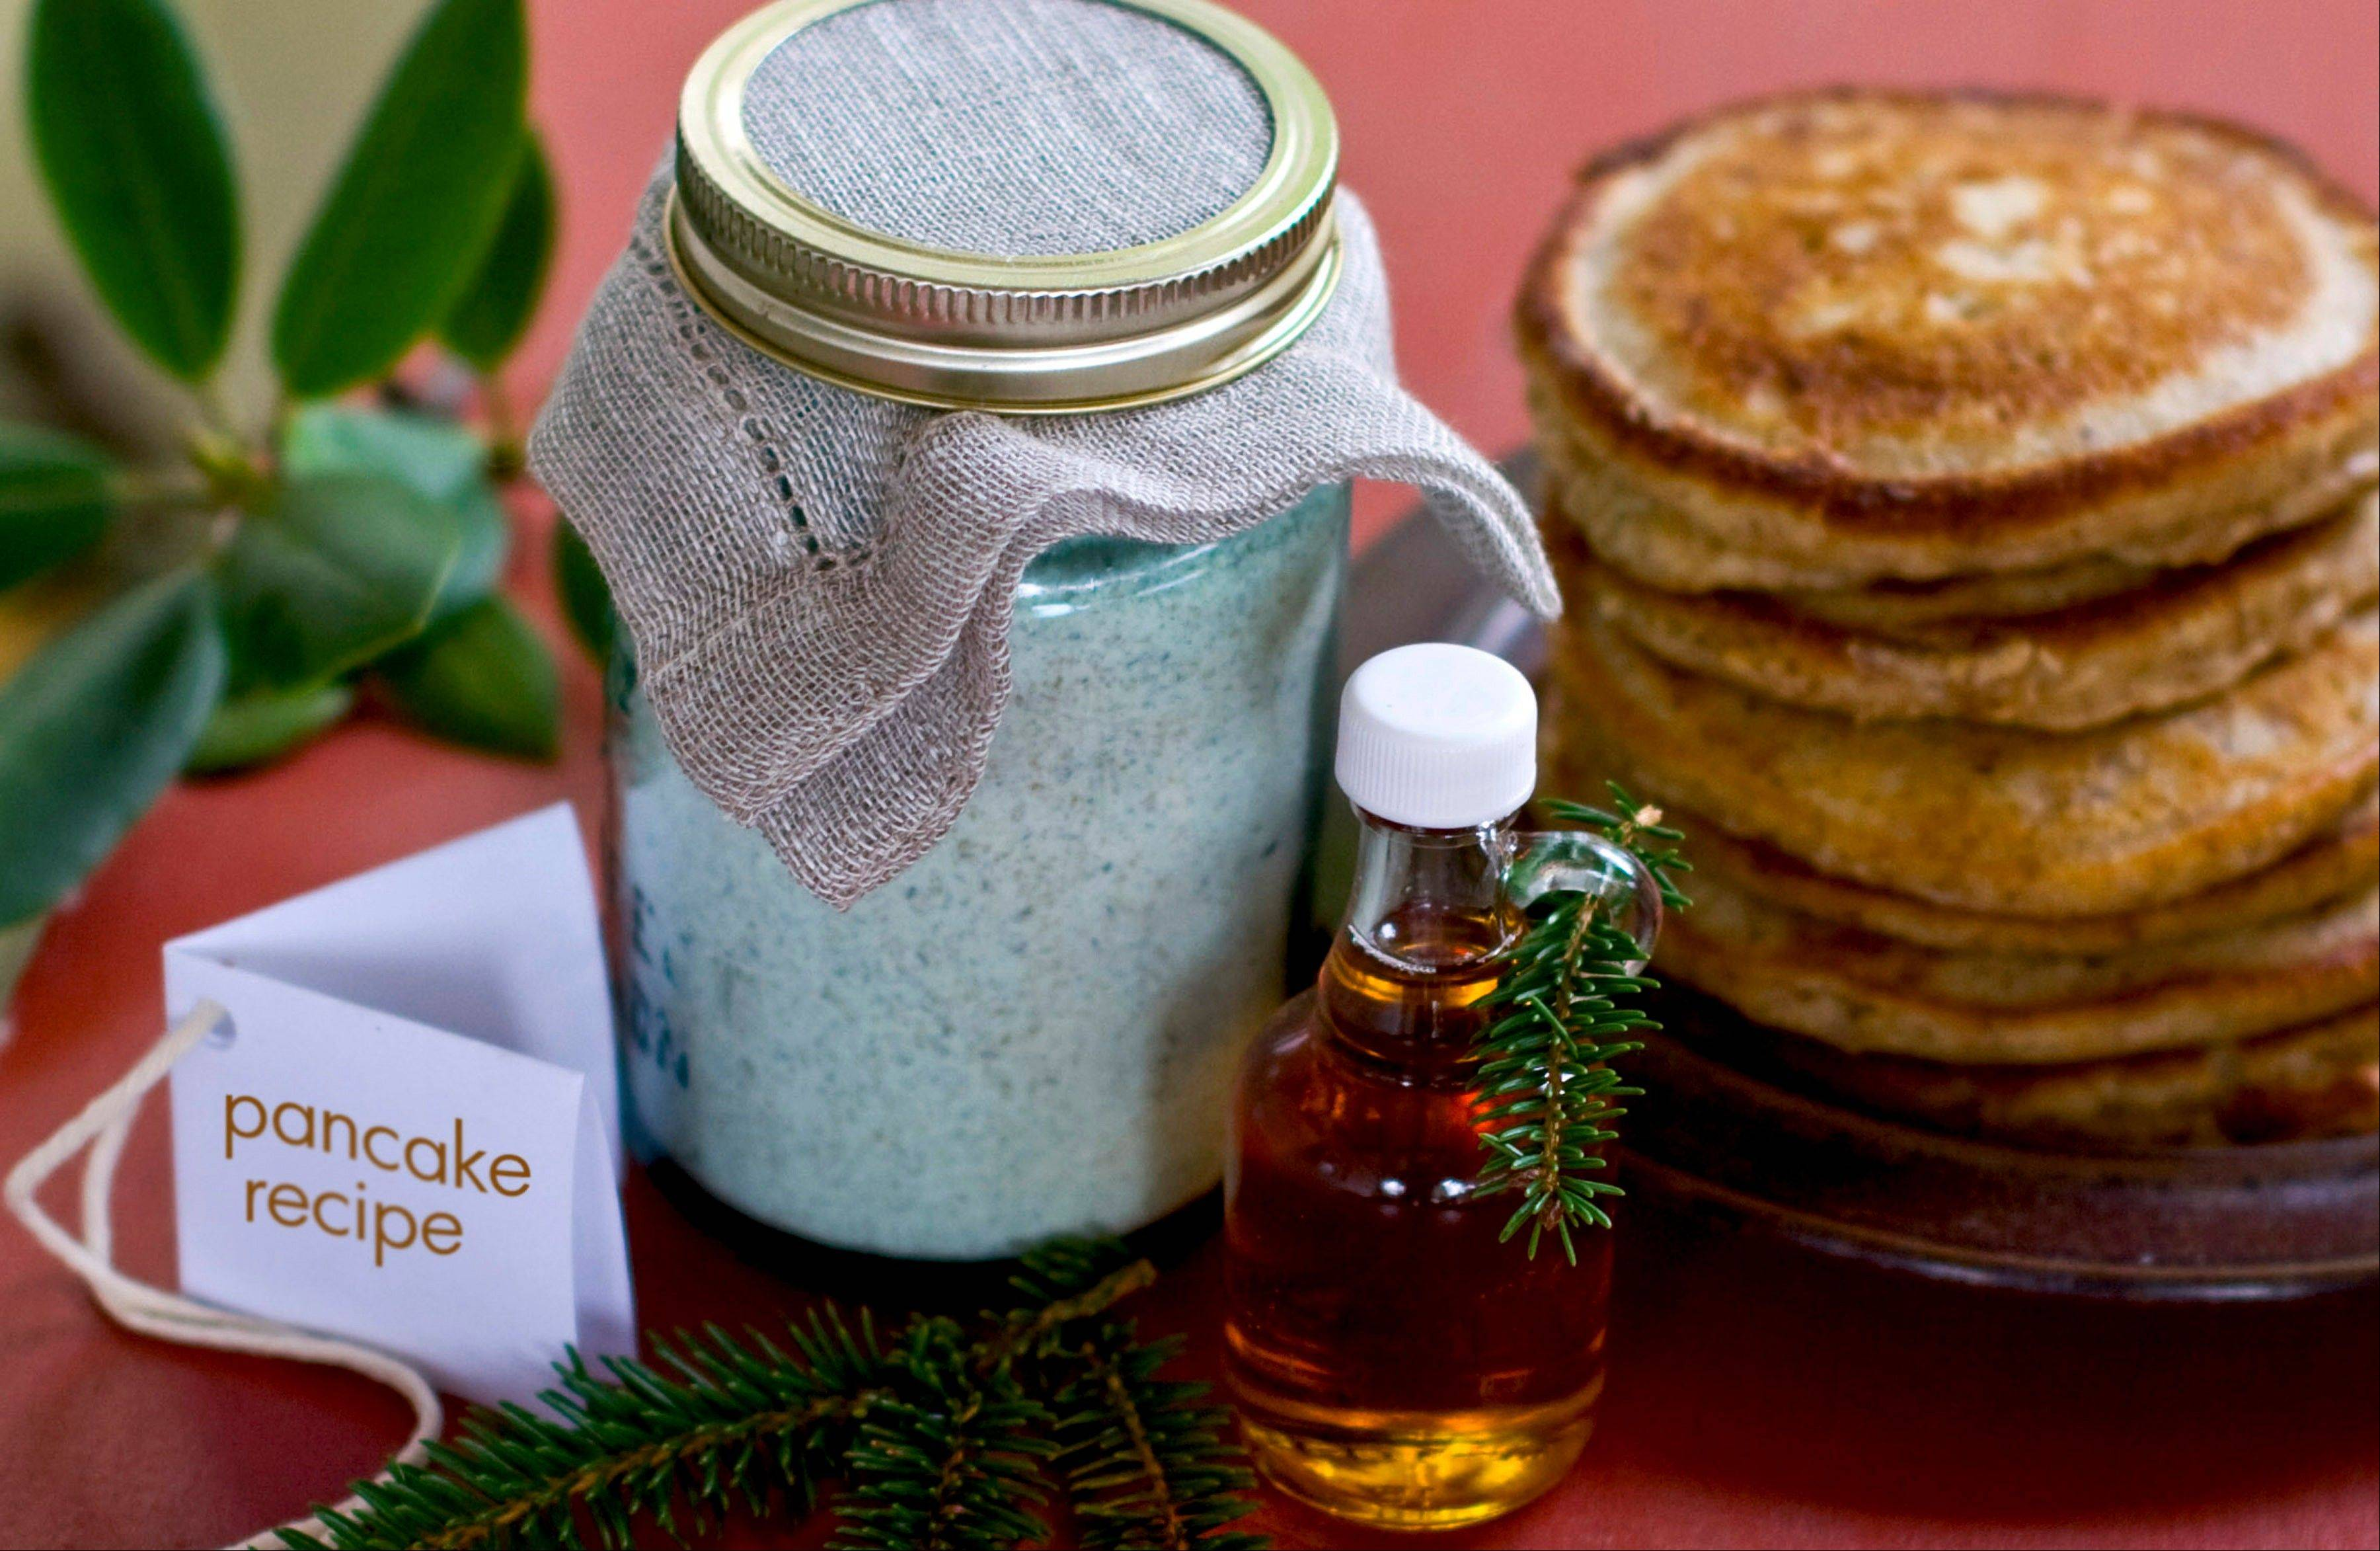 Make someone's holiday bright and healthy with homemade pancake and waffle mix.